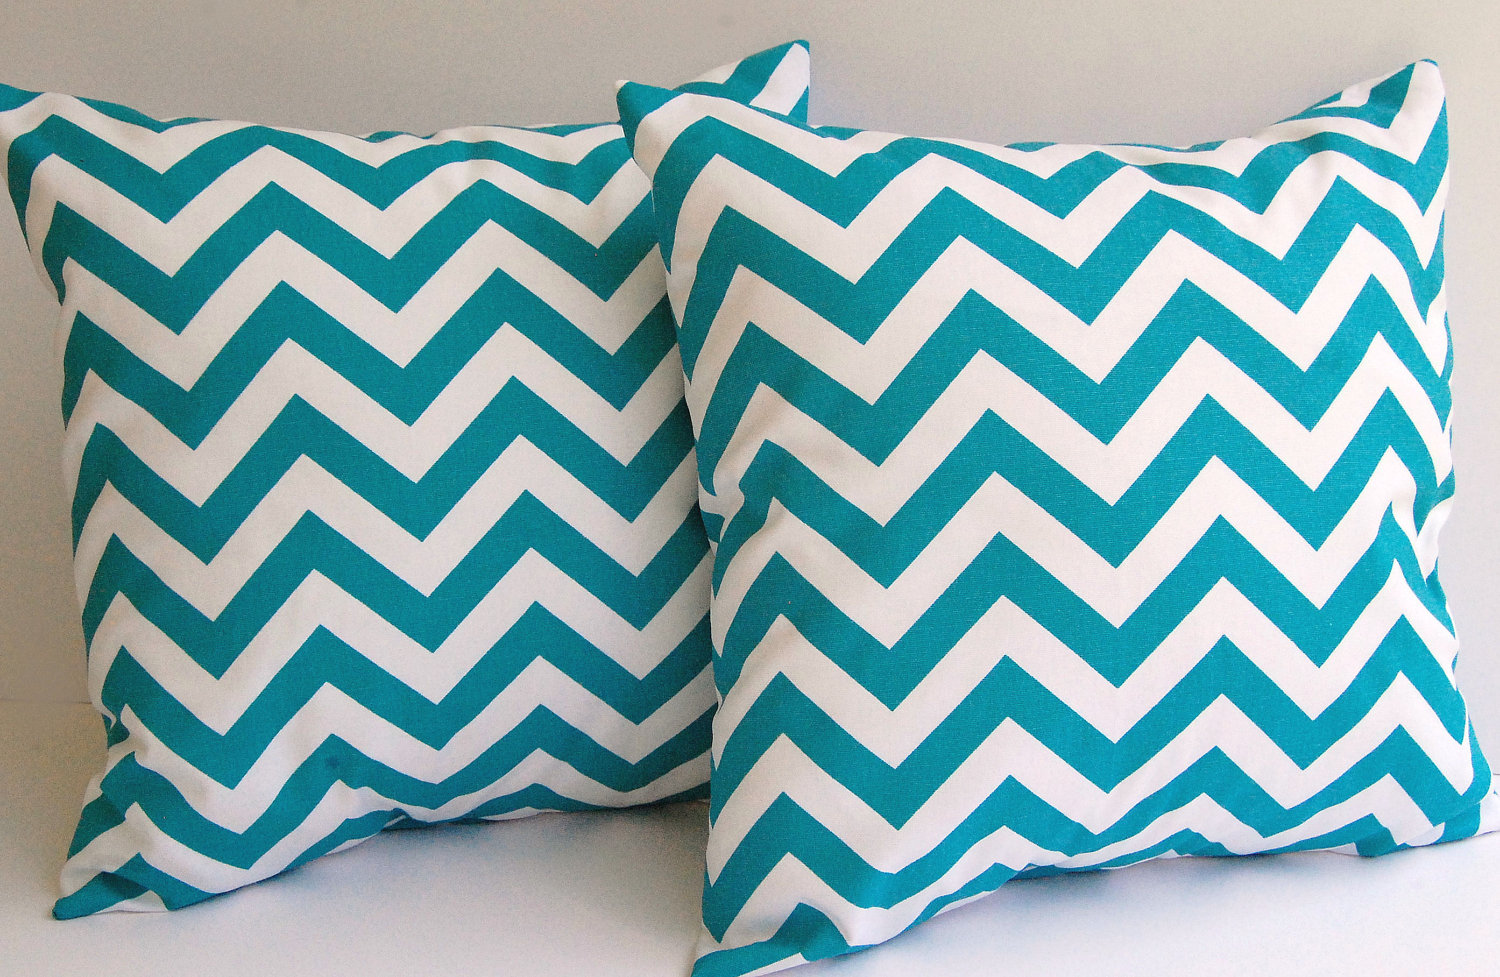 Turquoise chevrons on pillows